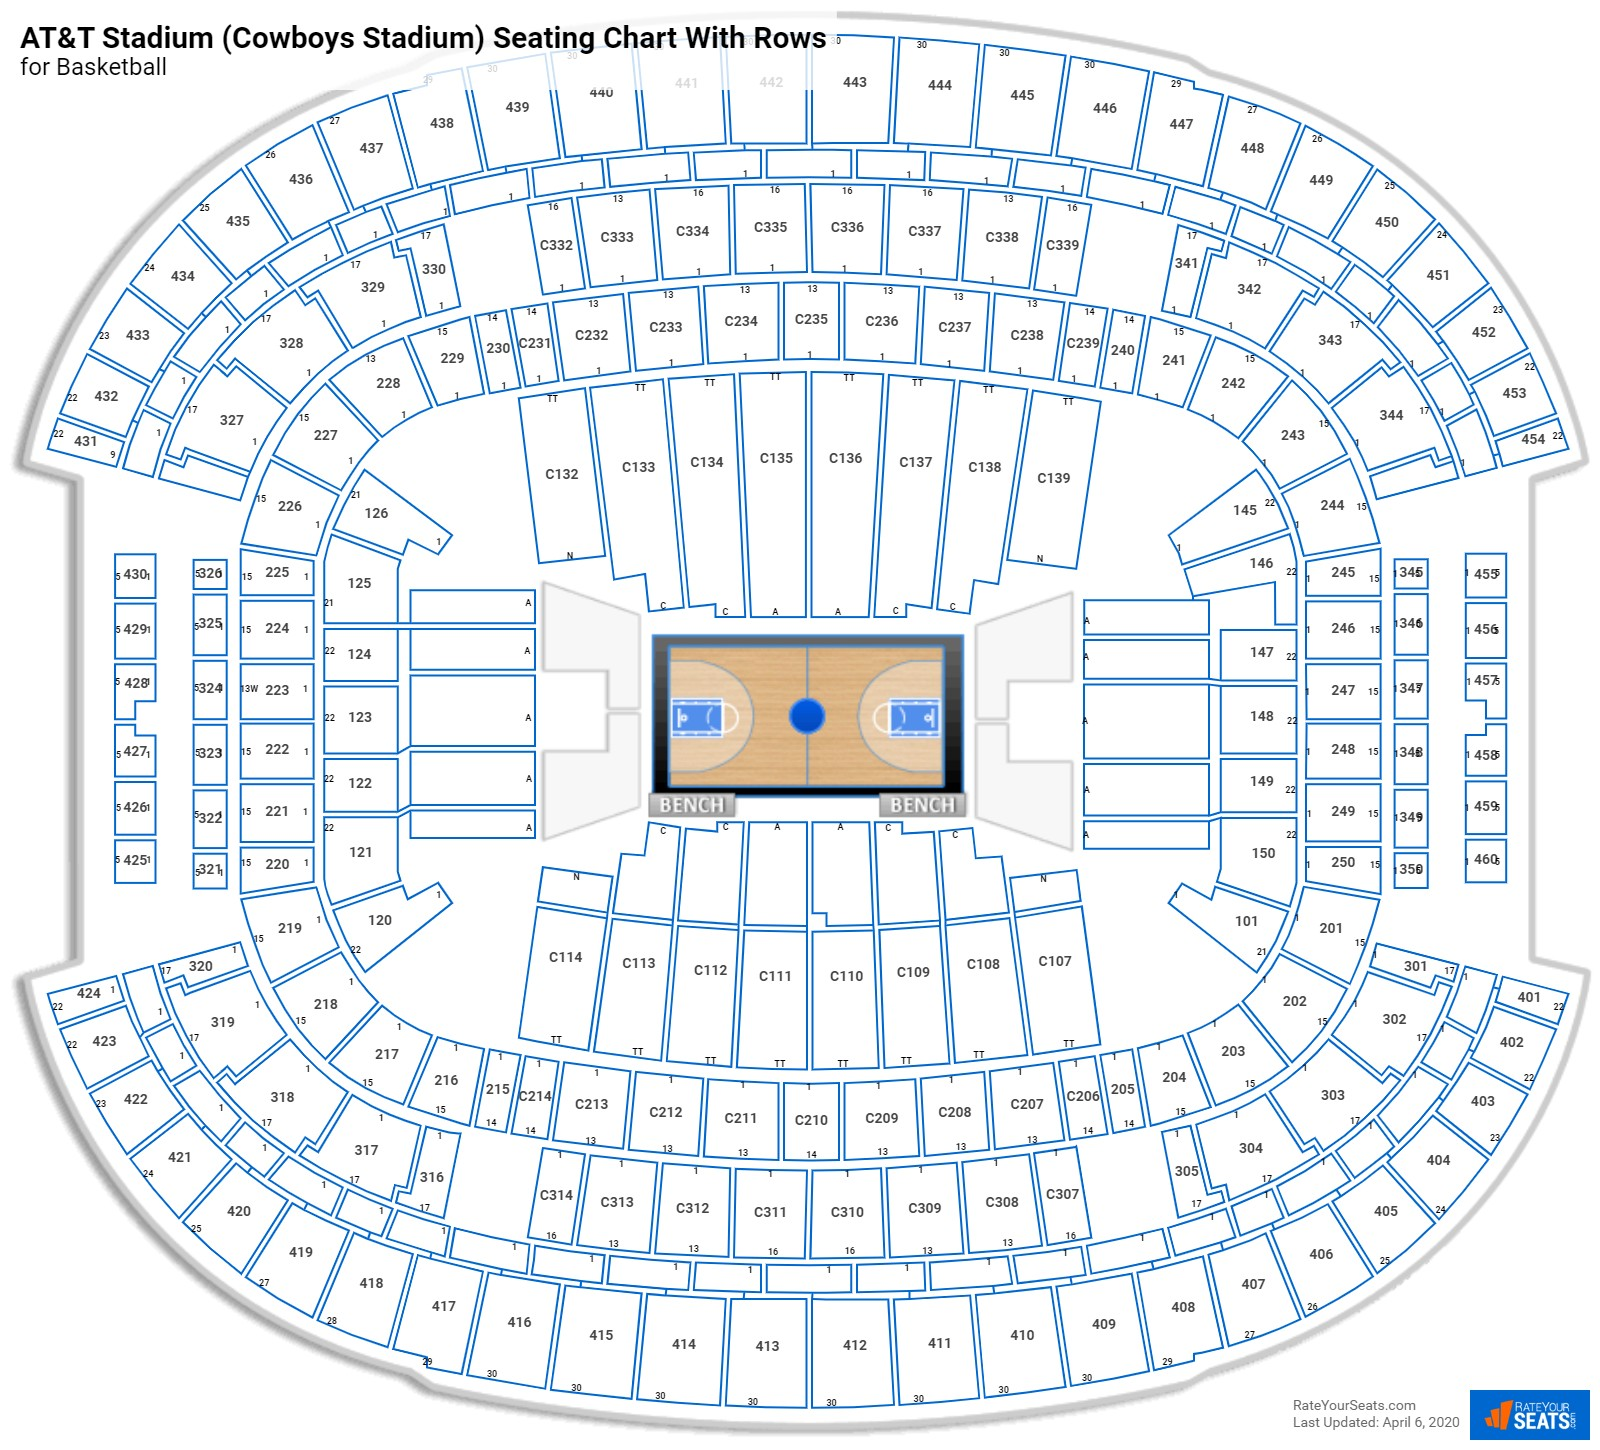 AT&T Stadium (Cowboys Stadium) seating chart with rows basketball